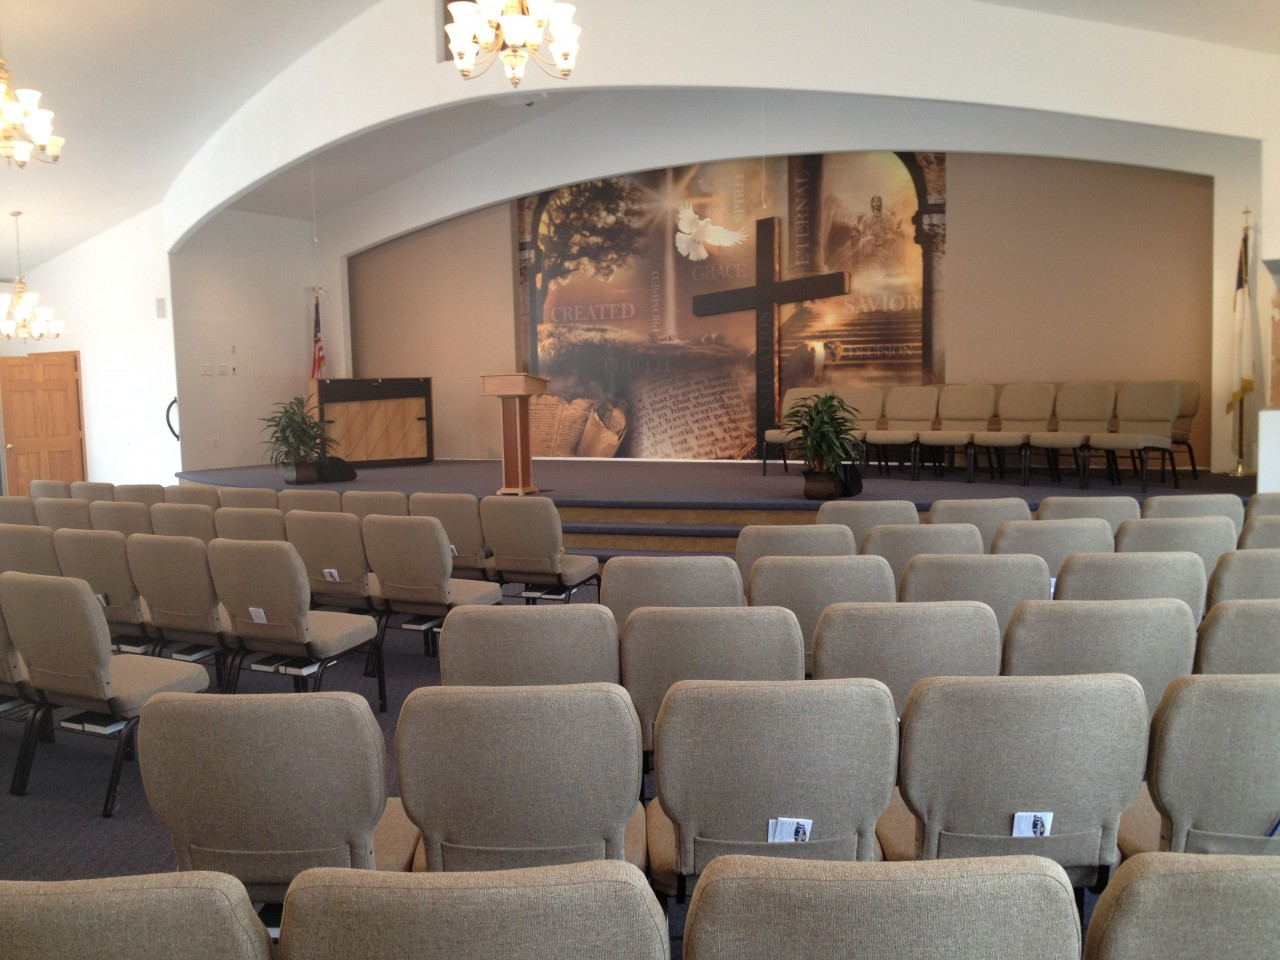 22. The New Auditorium complete with new sound system- Thank you Lord for the dedication of thy people.